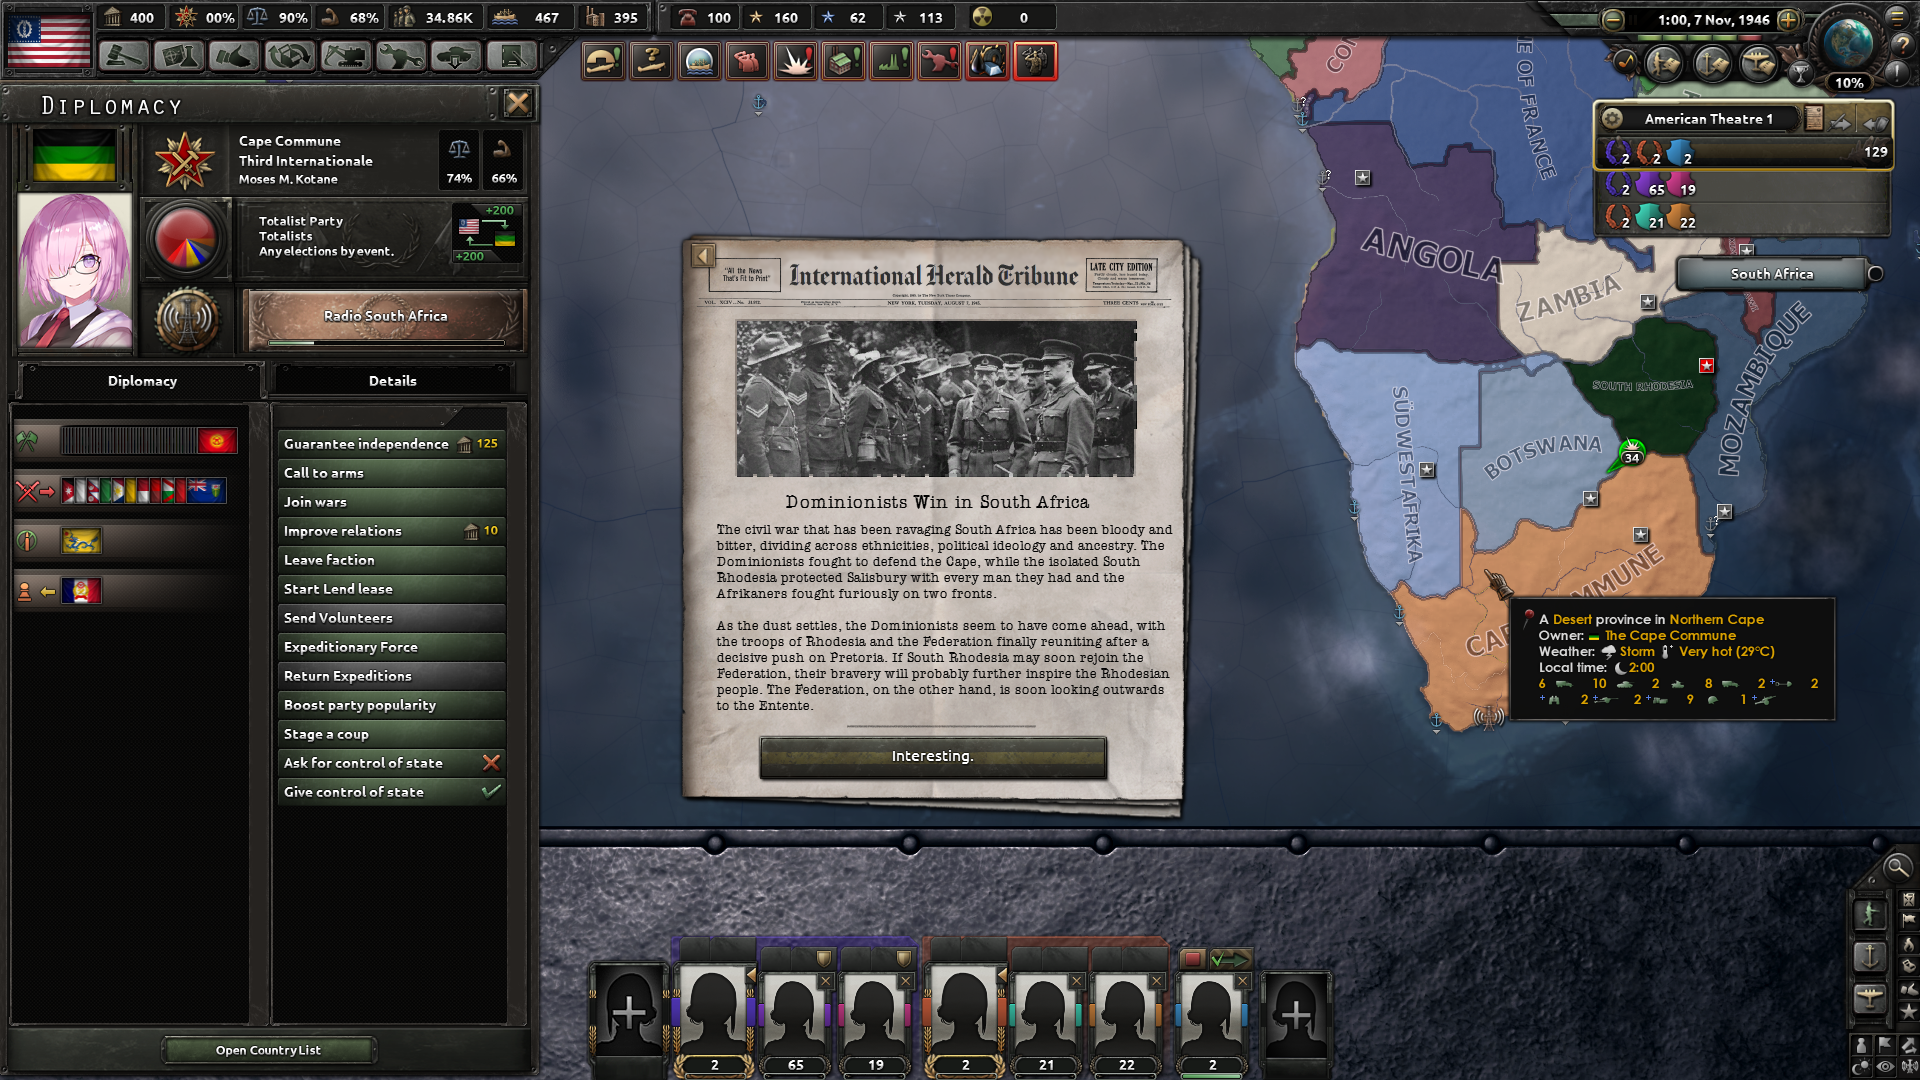 Liberating South Africa as a Syndicalist Ideology causes the